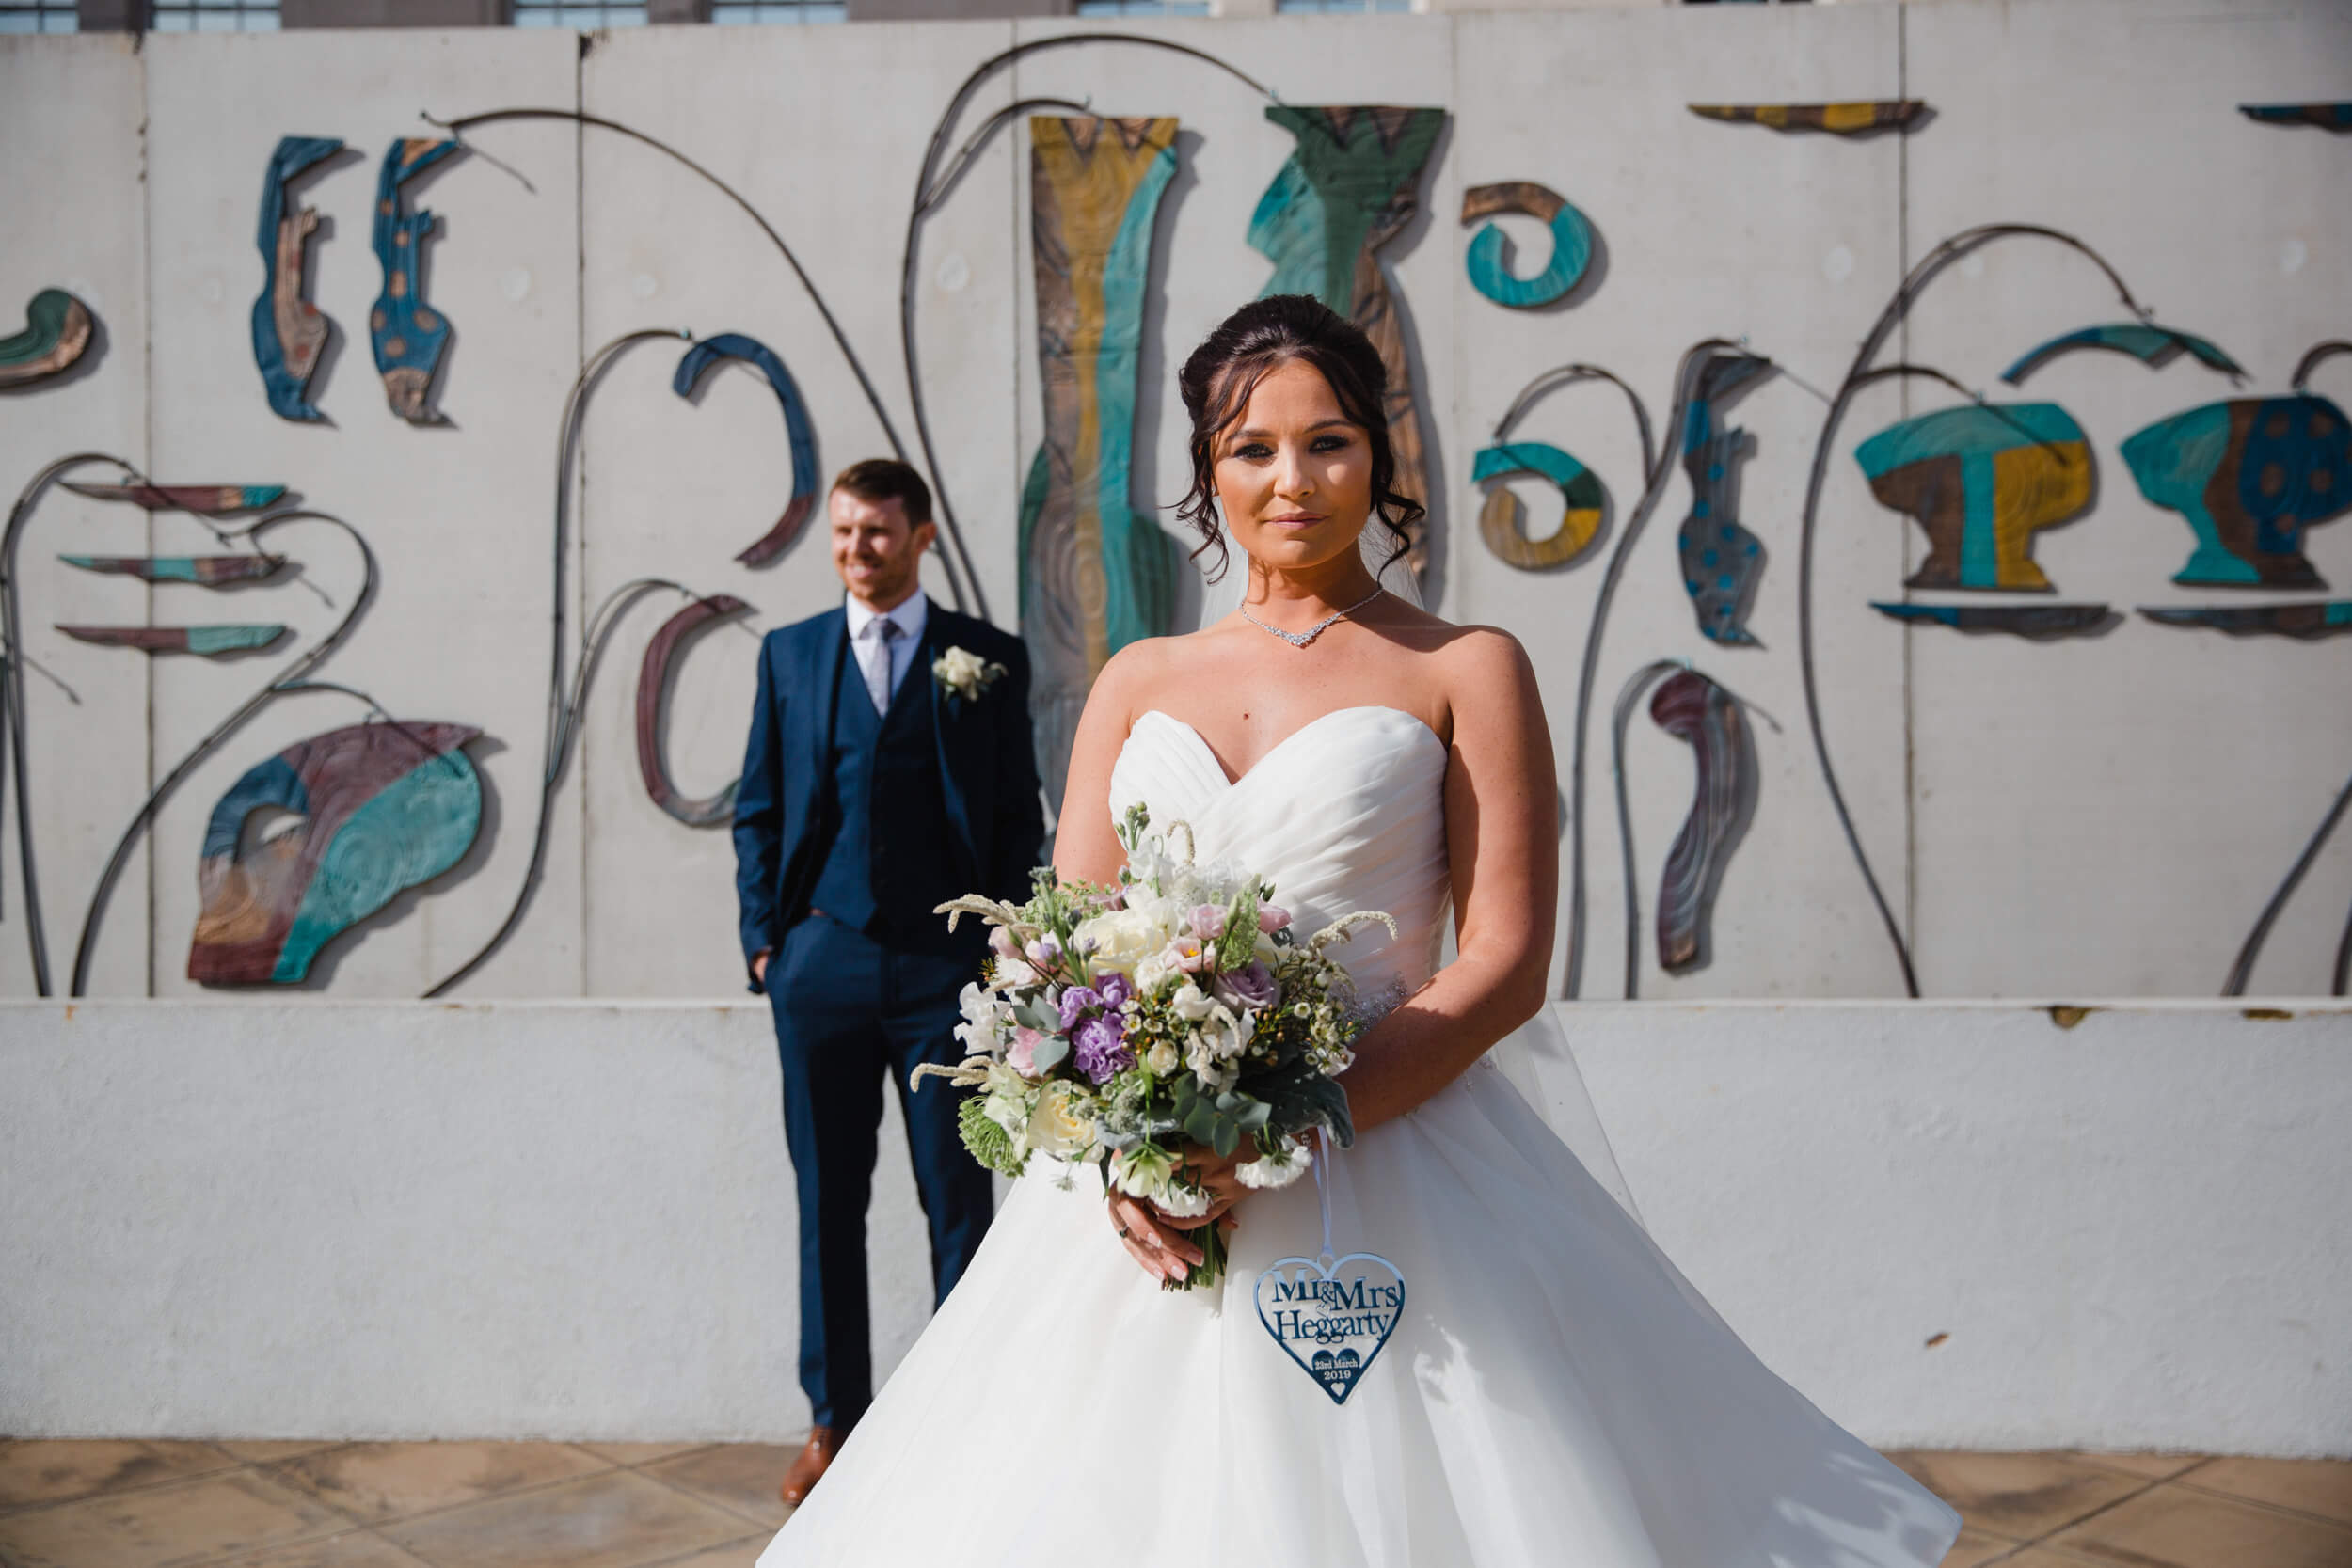 bride in foreground of photograph posing with bouquet